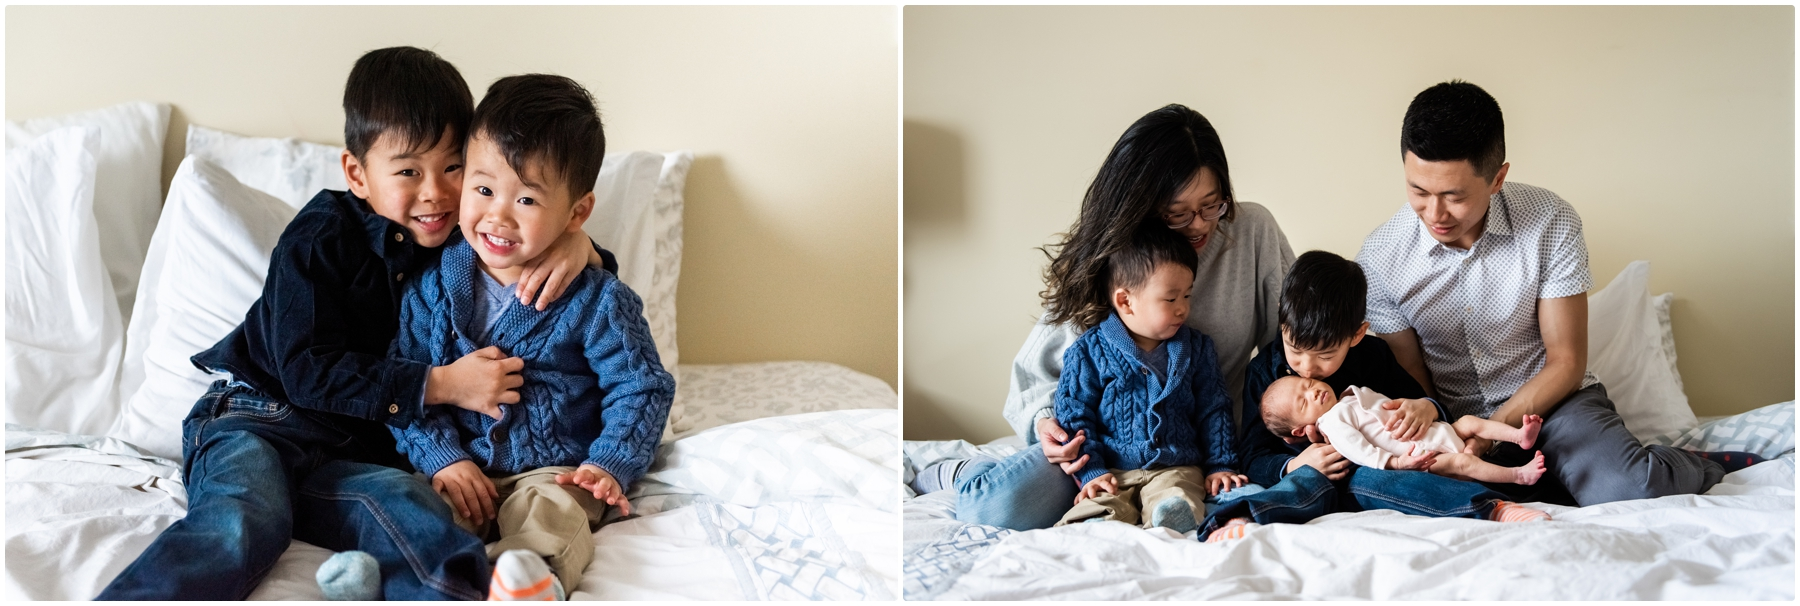 Family of 5 In Home Calgary Lifestyle Newborn Photos